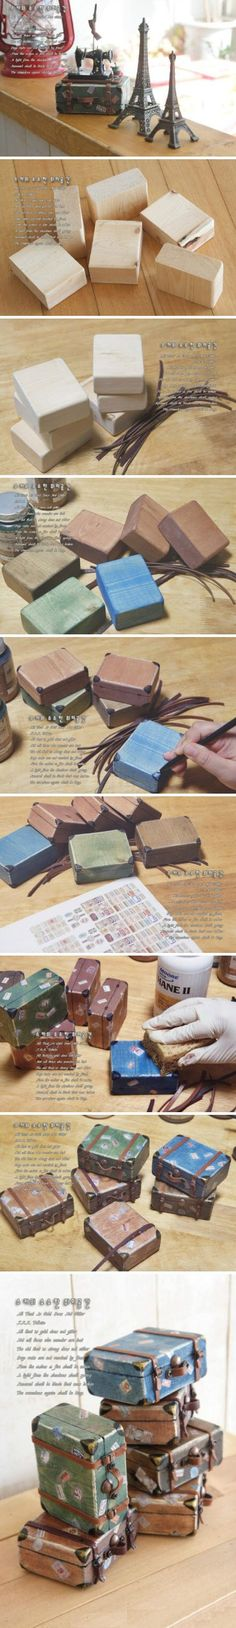 make these little suitcases out of boxes insted of wood, the instructions are not in english but there are detailed pics...